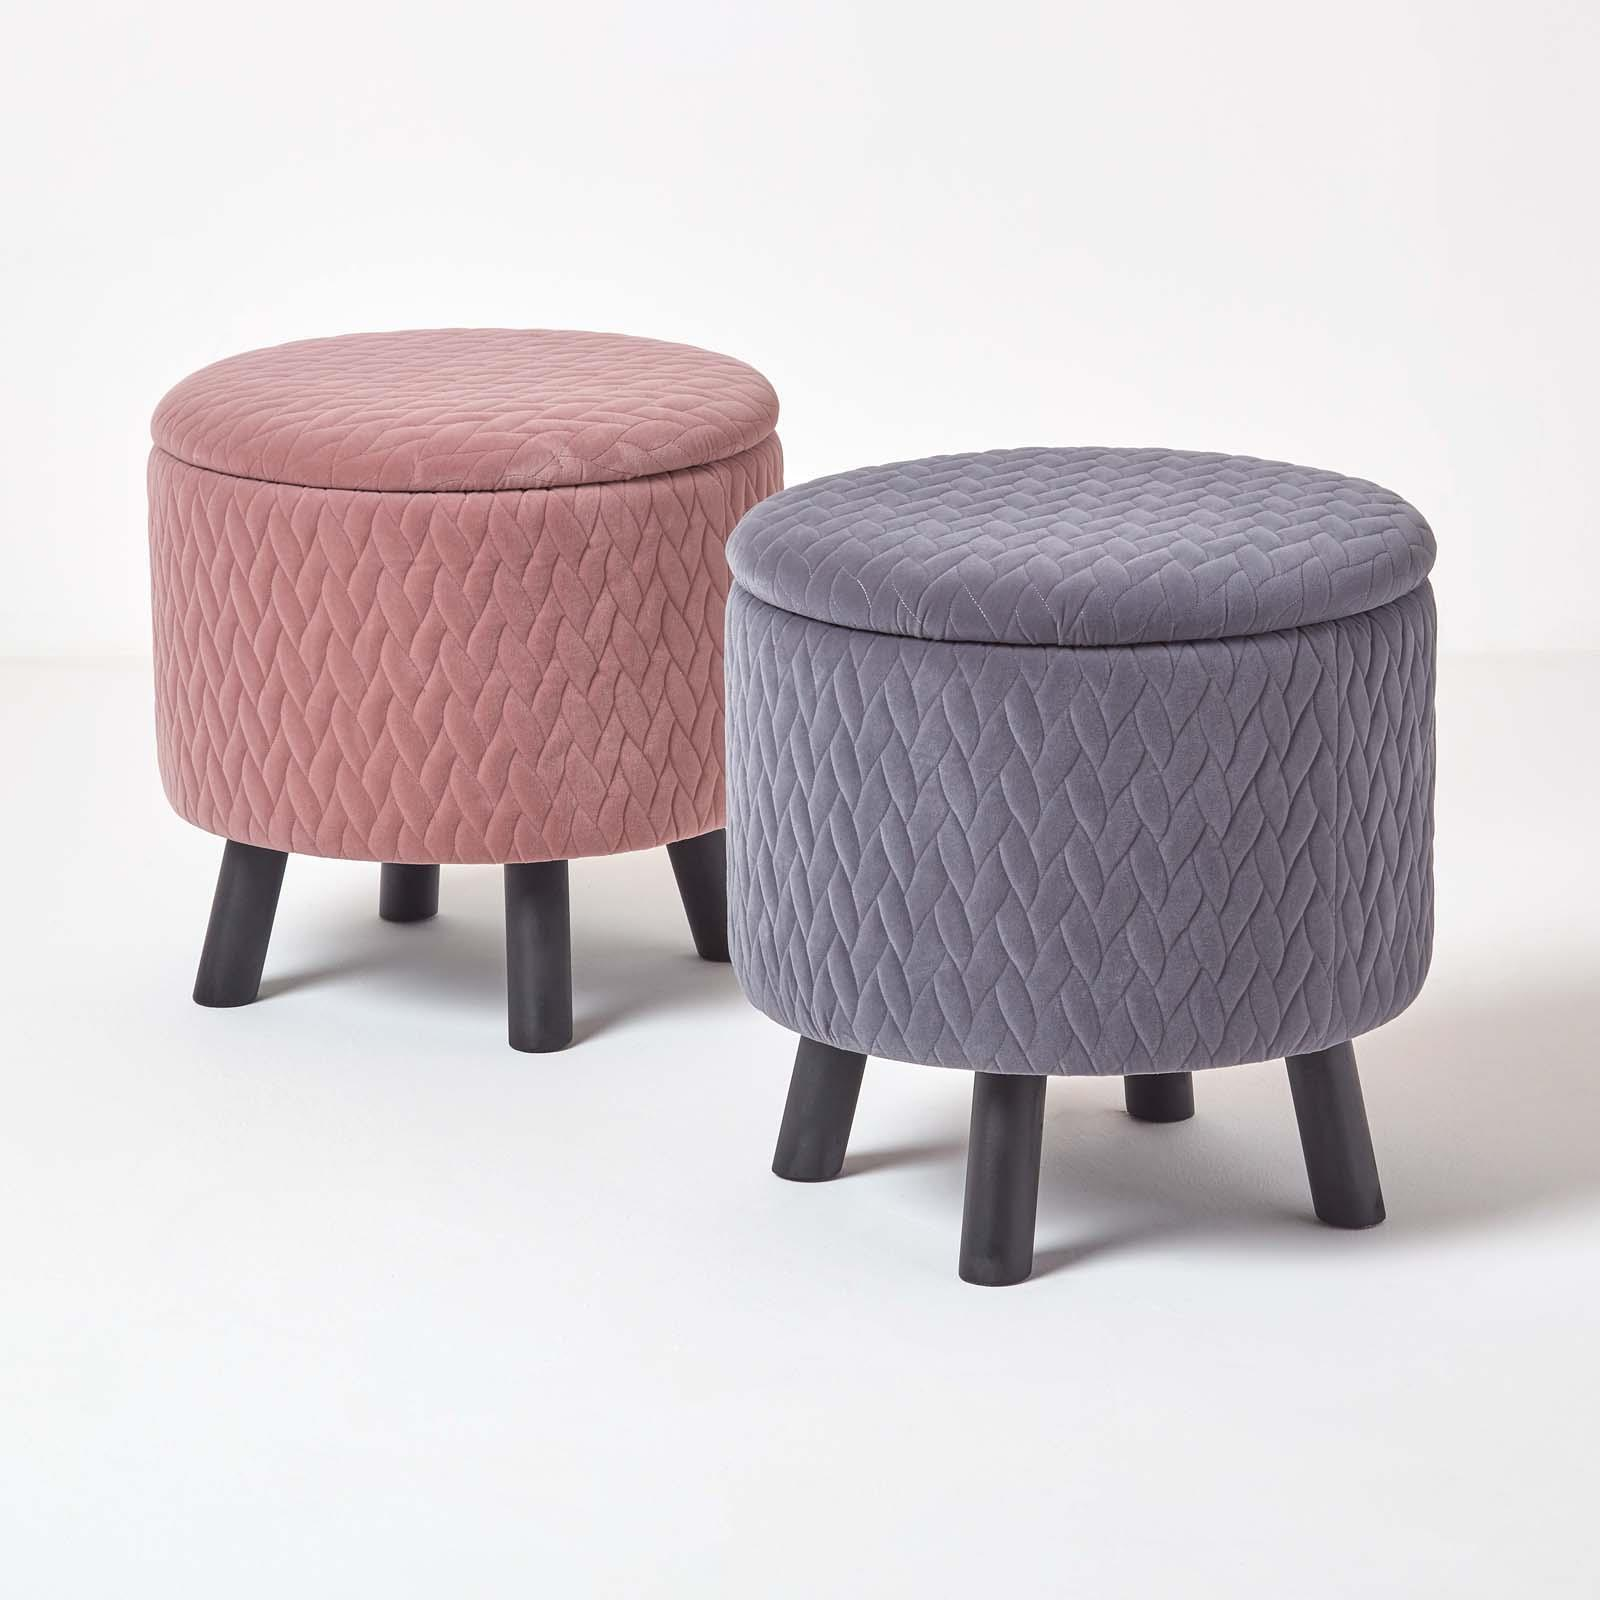 Astounding Details About Balmoral Velvet Quilted Footstool On Legs With Storage Round Ottoman Soft Stool Cjindustries Chair Design For Home Cjindustriesco